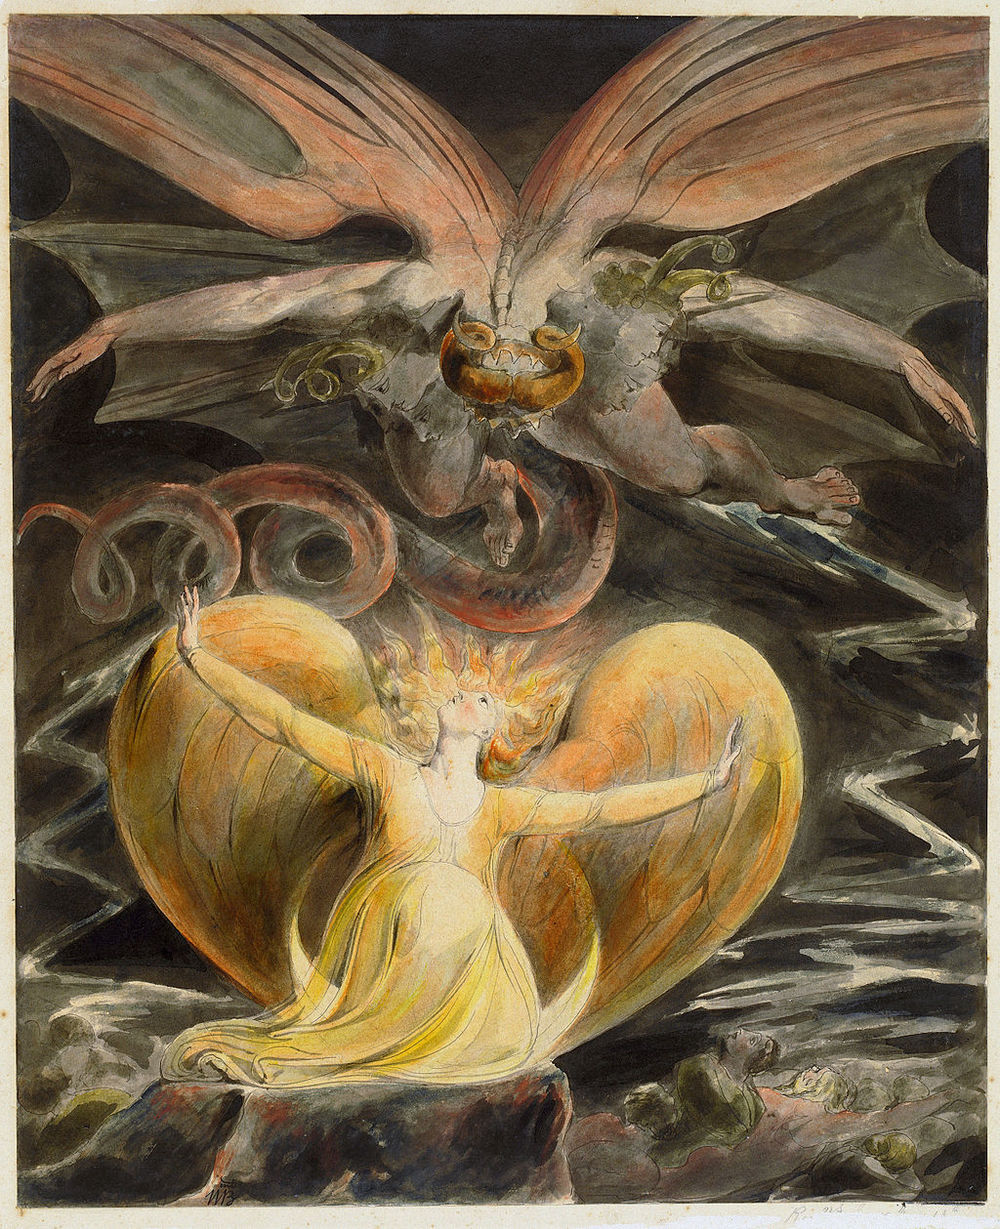 William Blake,  The Great Red Dragon and the Woman Clothed with the Sun  (early 1800s)